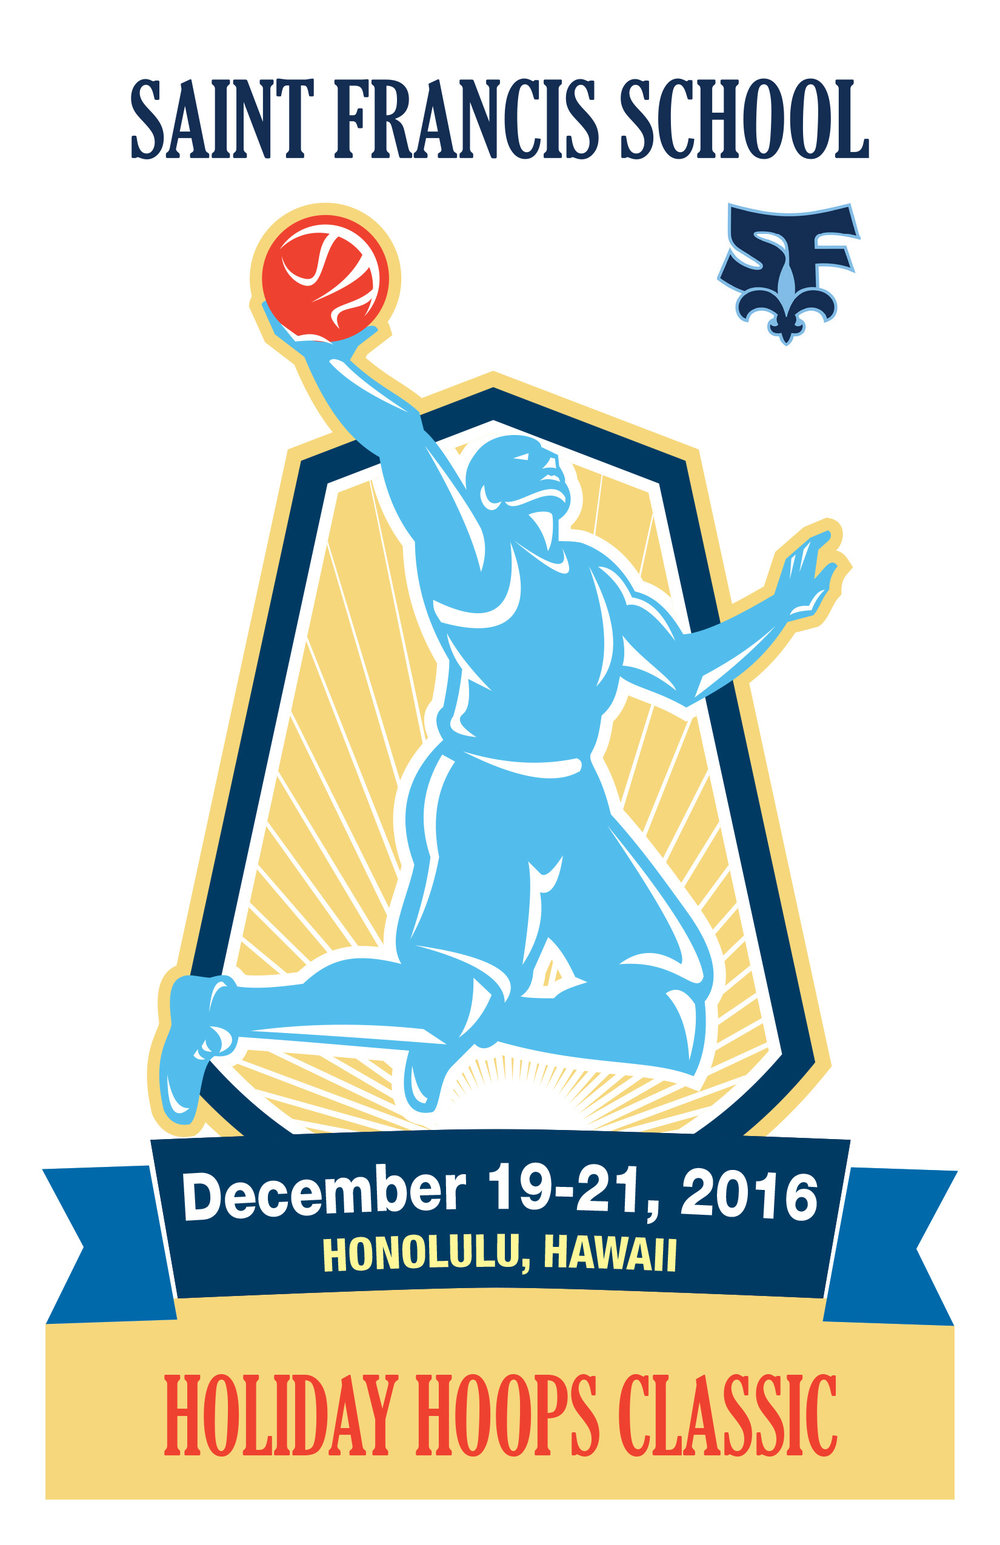 HolidayHoopsClassic_2016.jpg